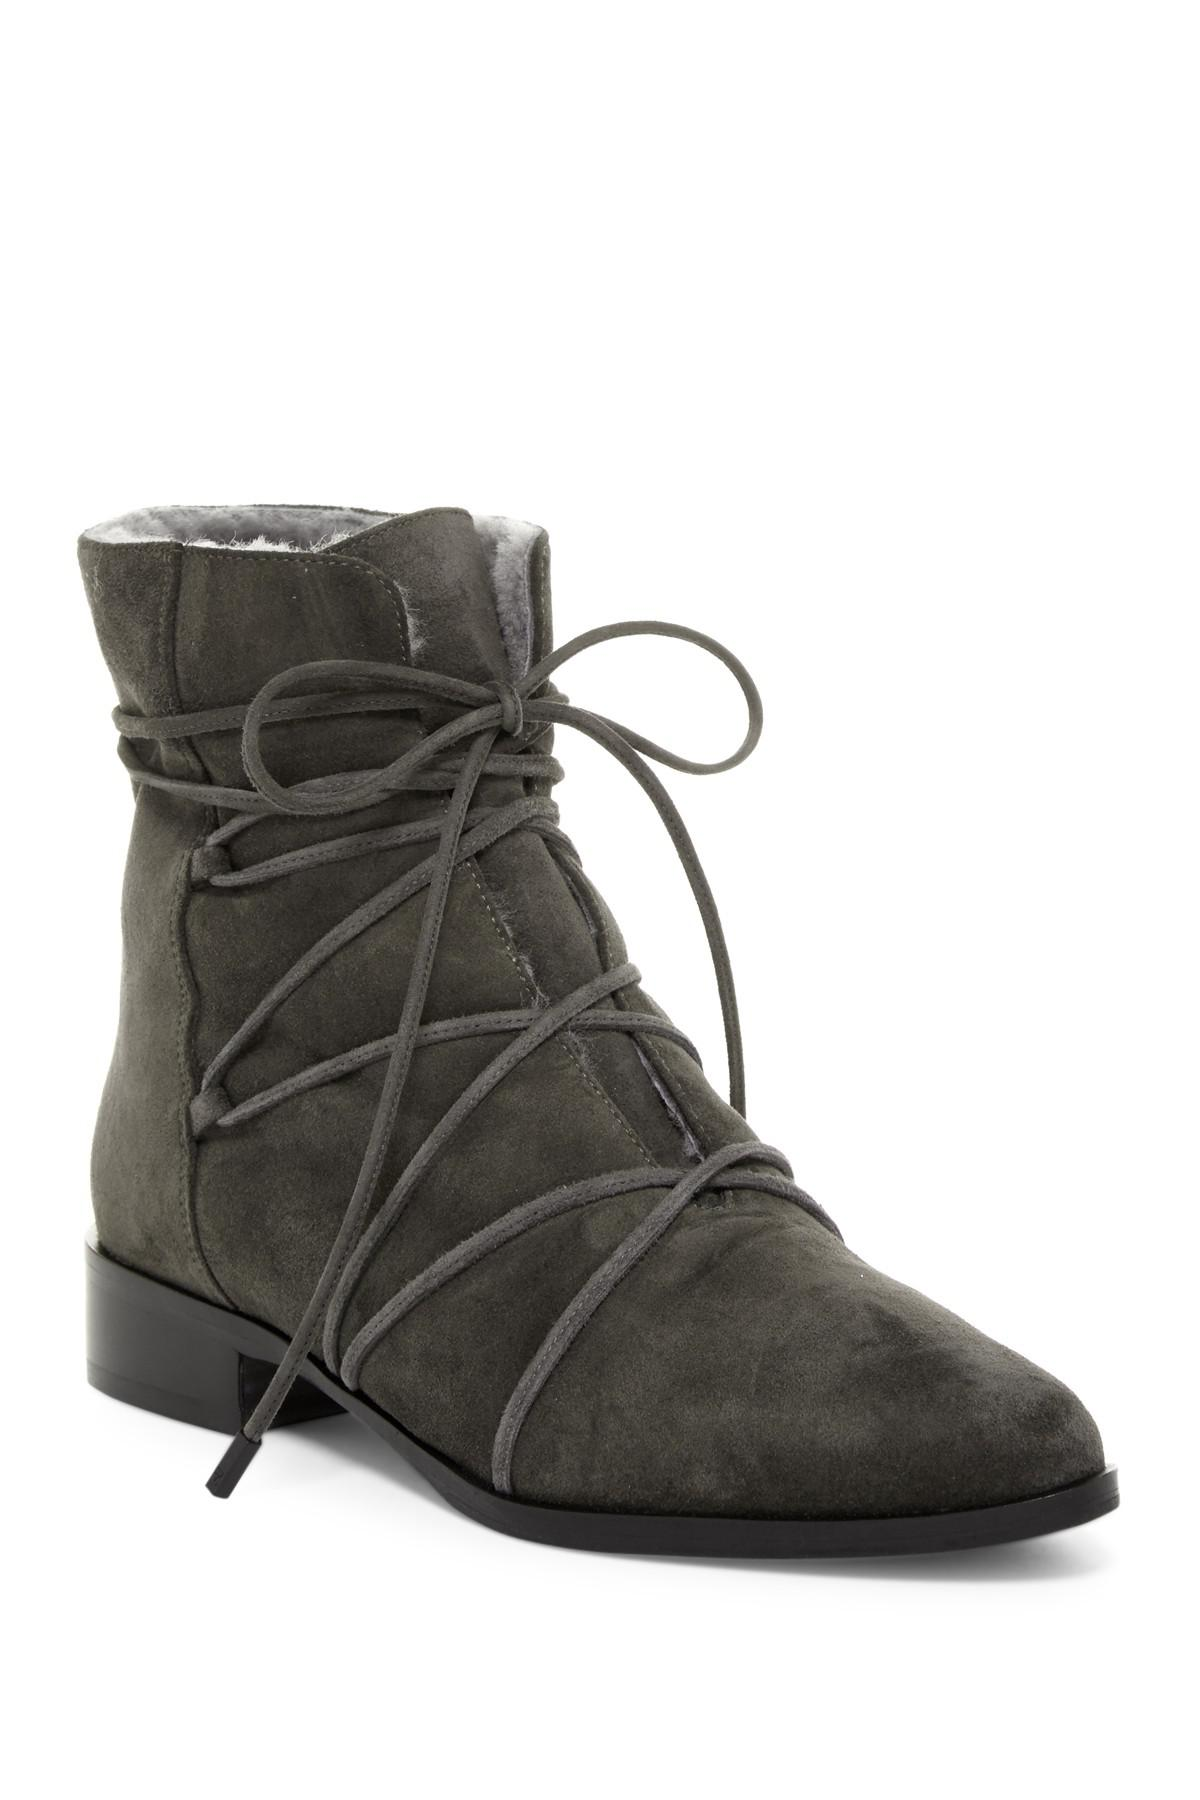 Diane von Furstenberg Shearling Lined Ankle Boots for cheap for sale cheap big sale classic cheap price sale excellent pay with paypal online kxS1IX